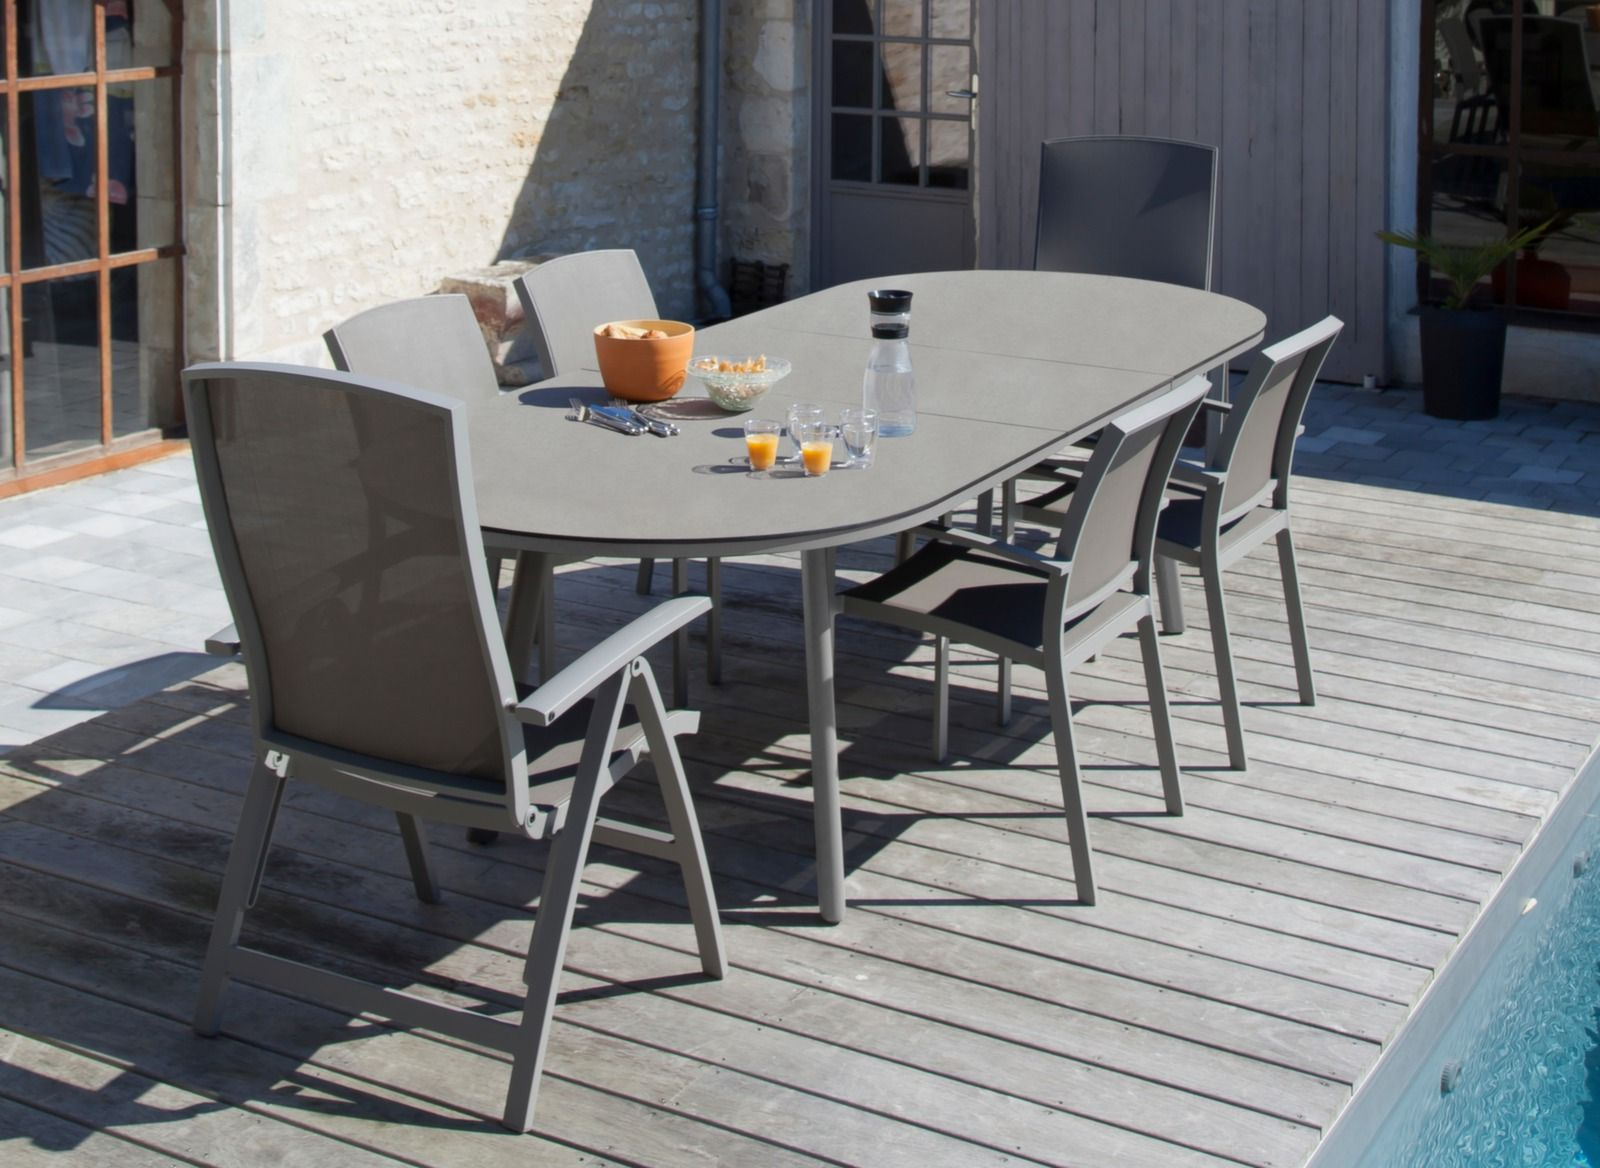 Table Teck 12 Personnes Table Ovale 12 Personnes Salon De Jardin En Teck Huil